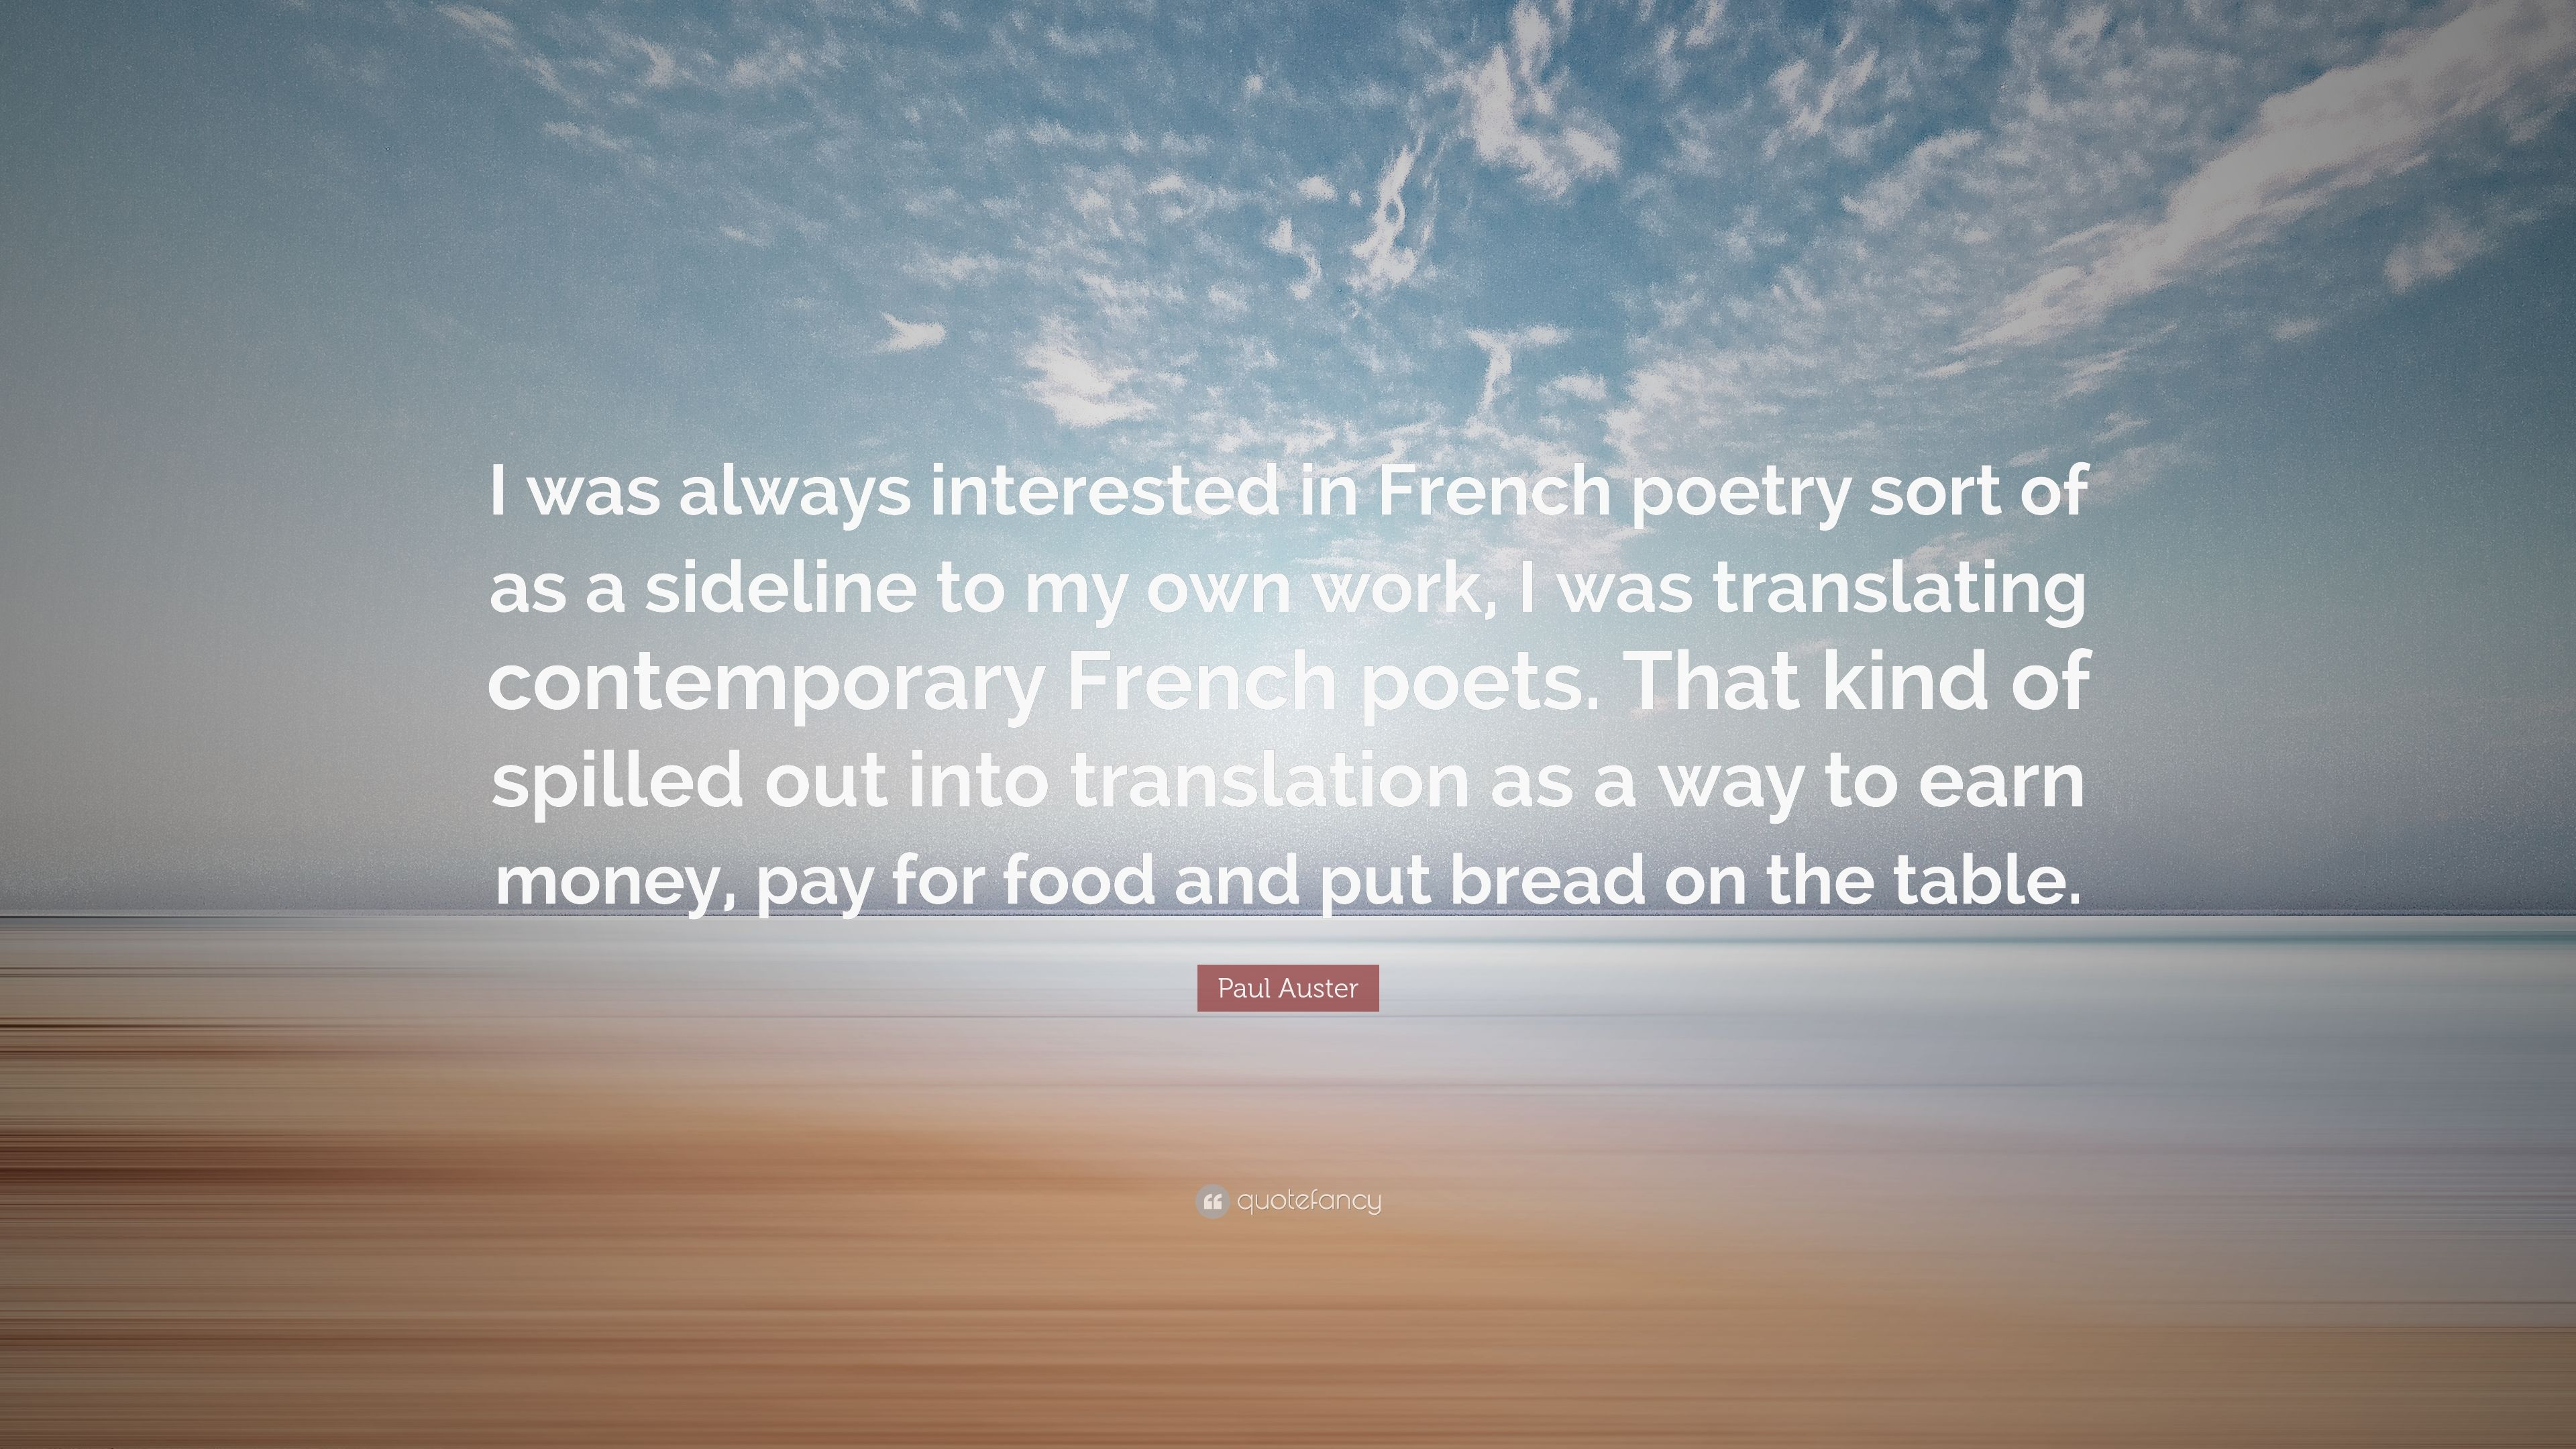 Interested in french